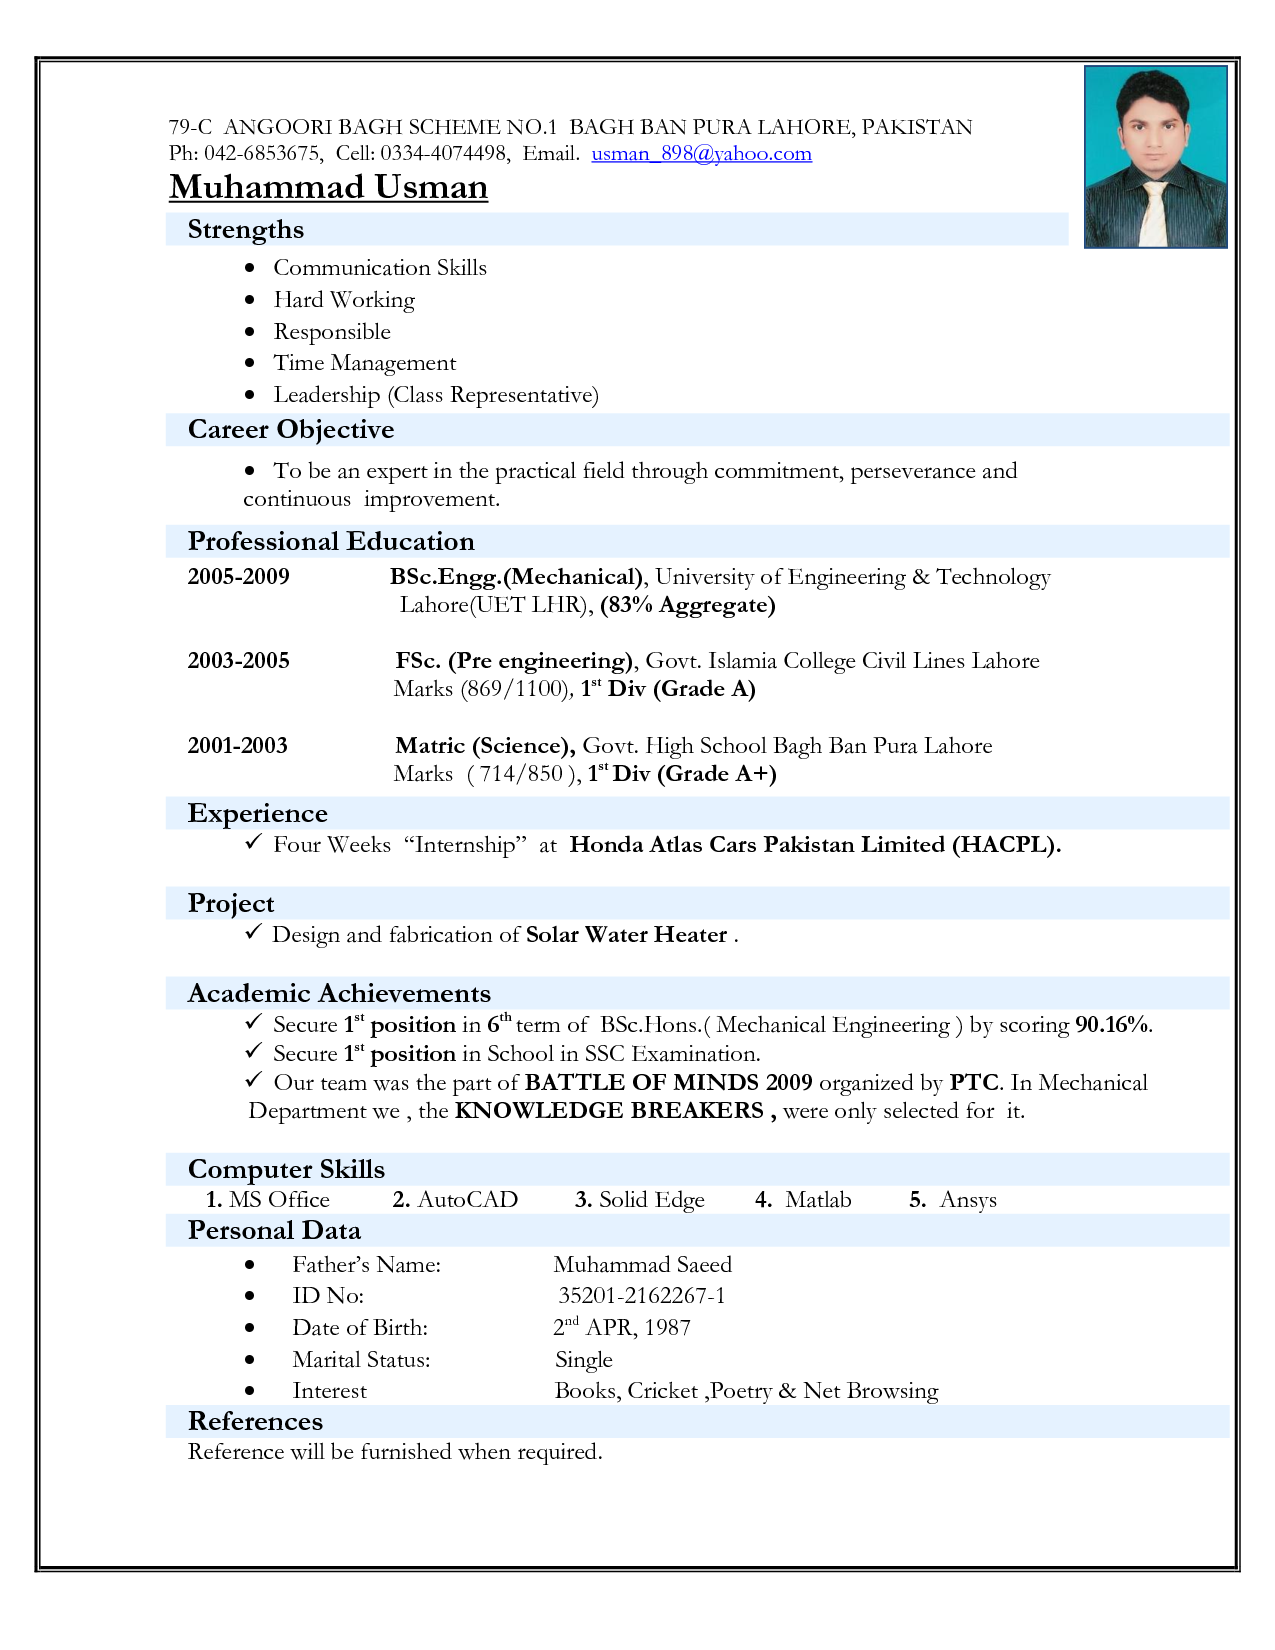 Technical Resume Template 5 Biodata Format For Student  Mailroom Clerk  Bihar  Pinterest